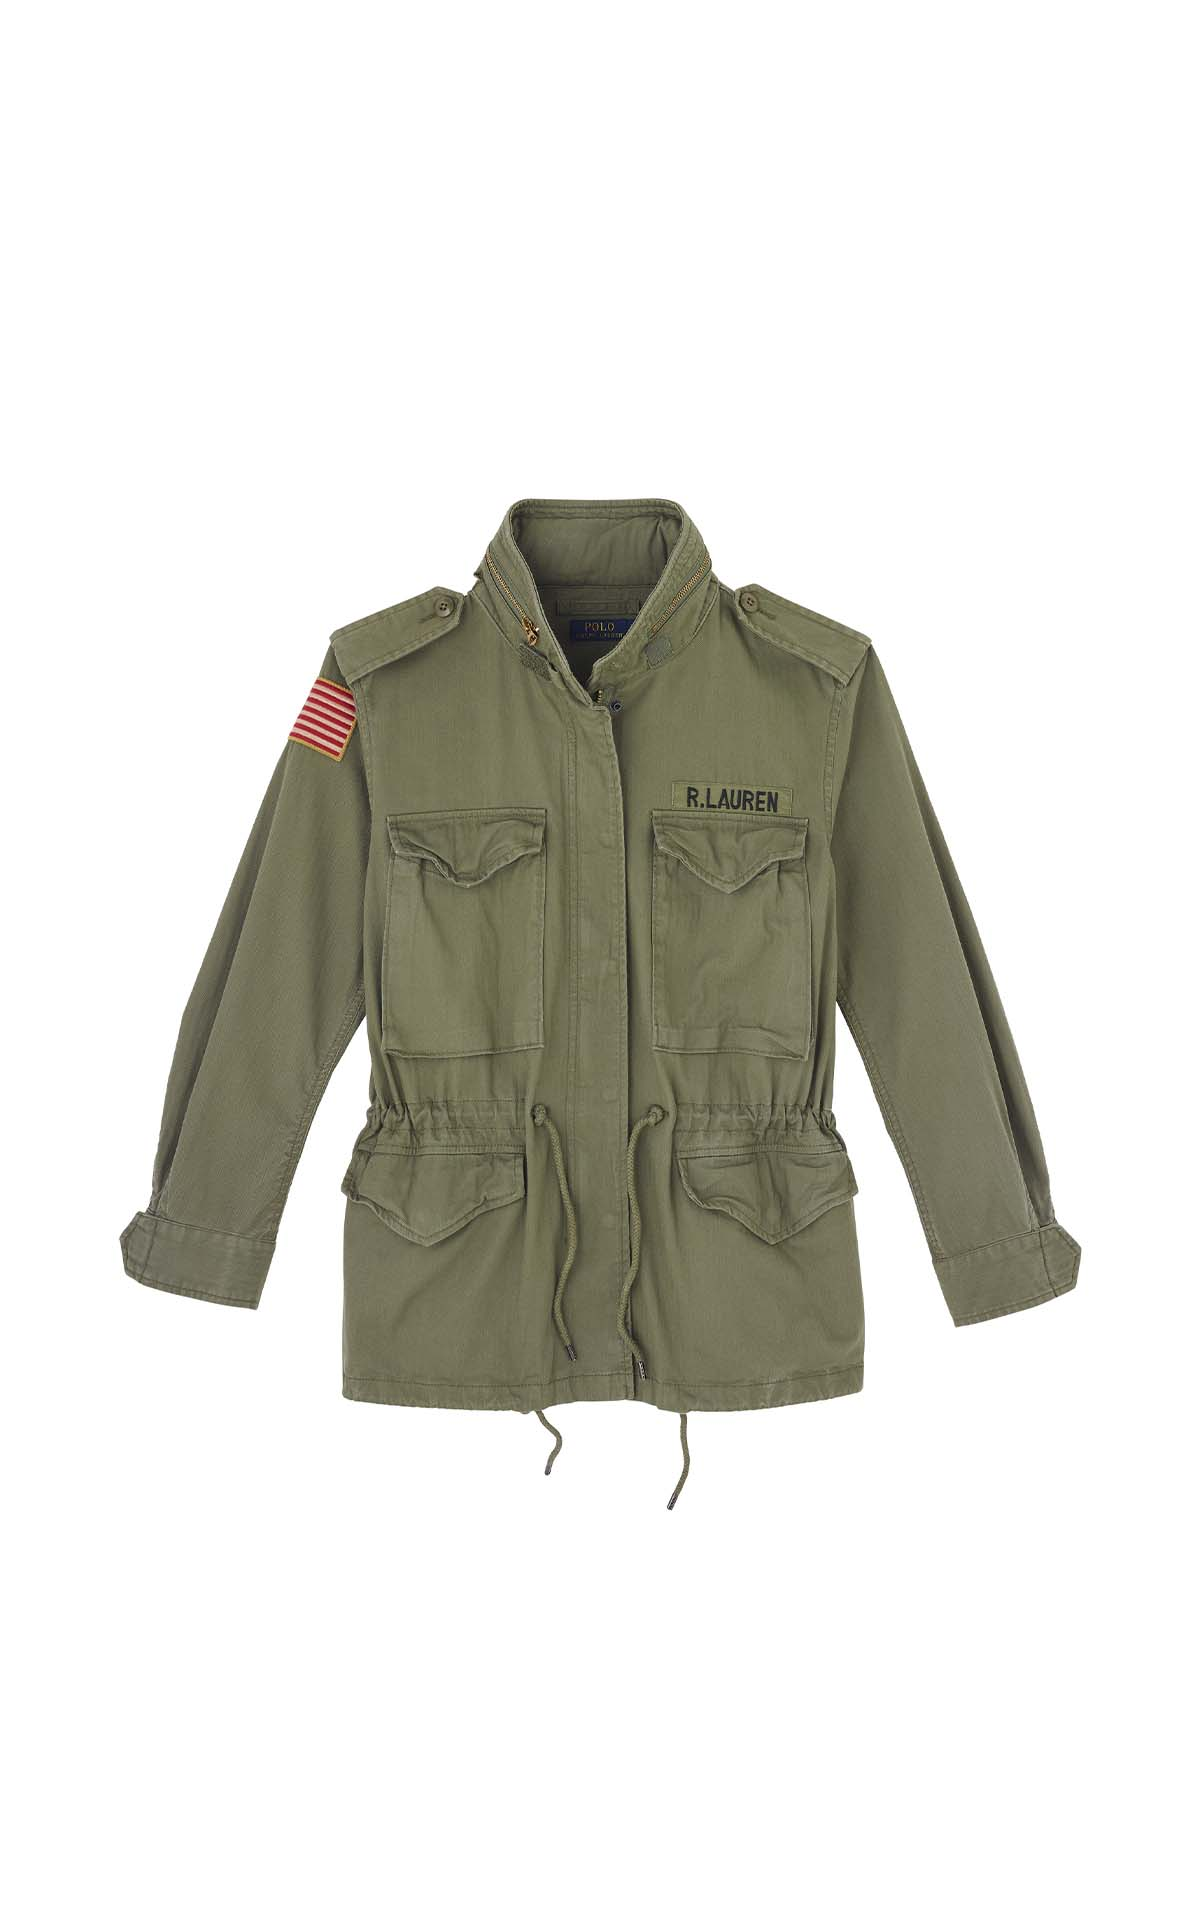 Polo Ralph Lauren Iconic field jacket at The Bicester Village Shopping Collection